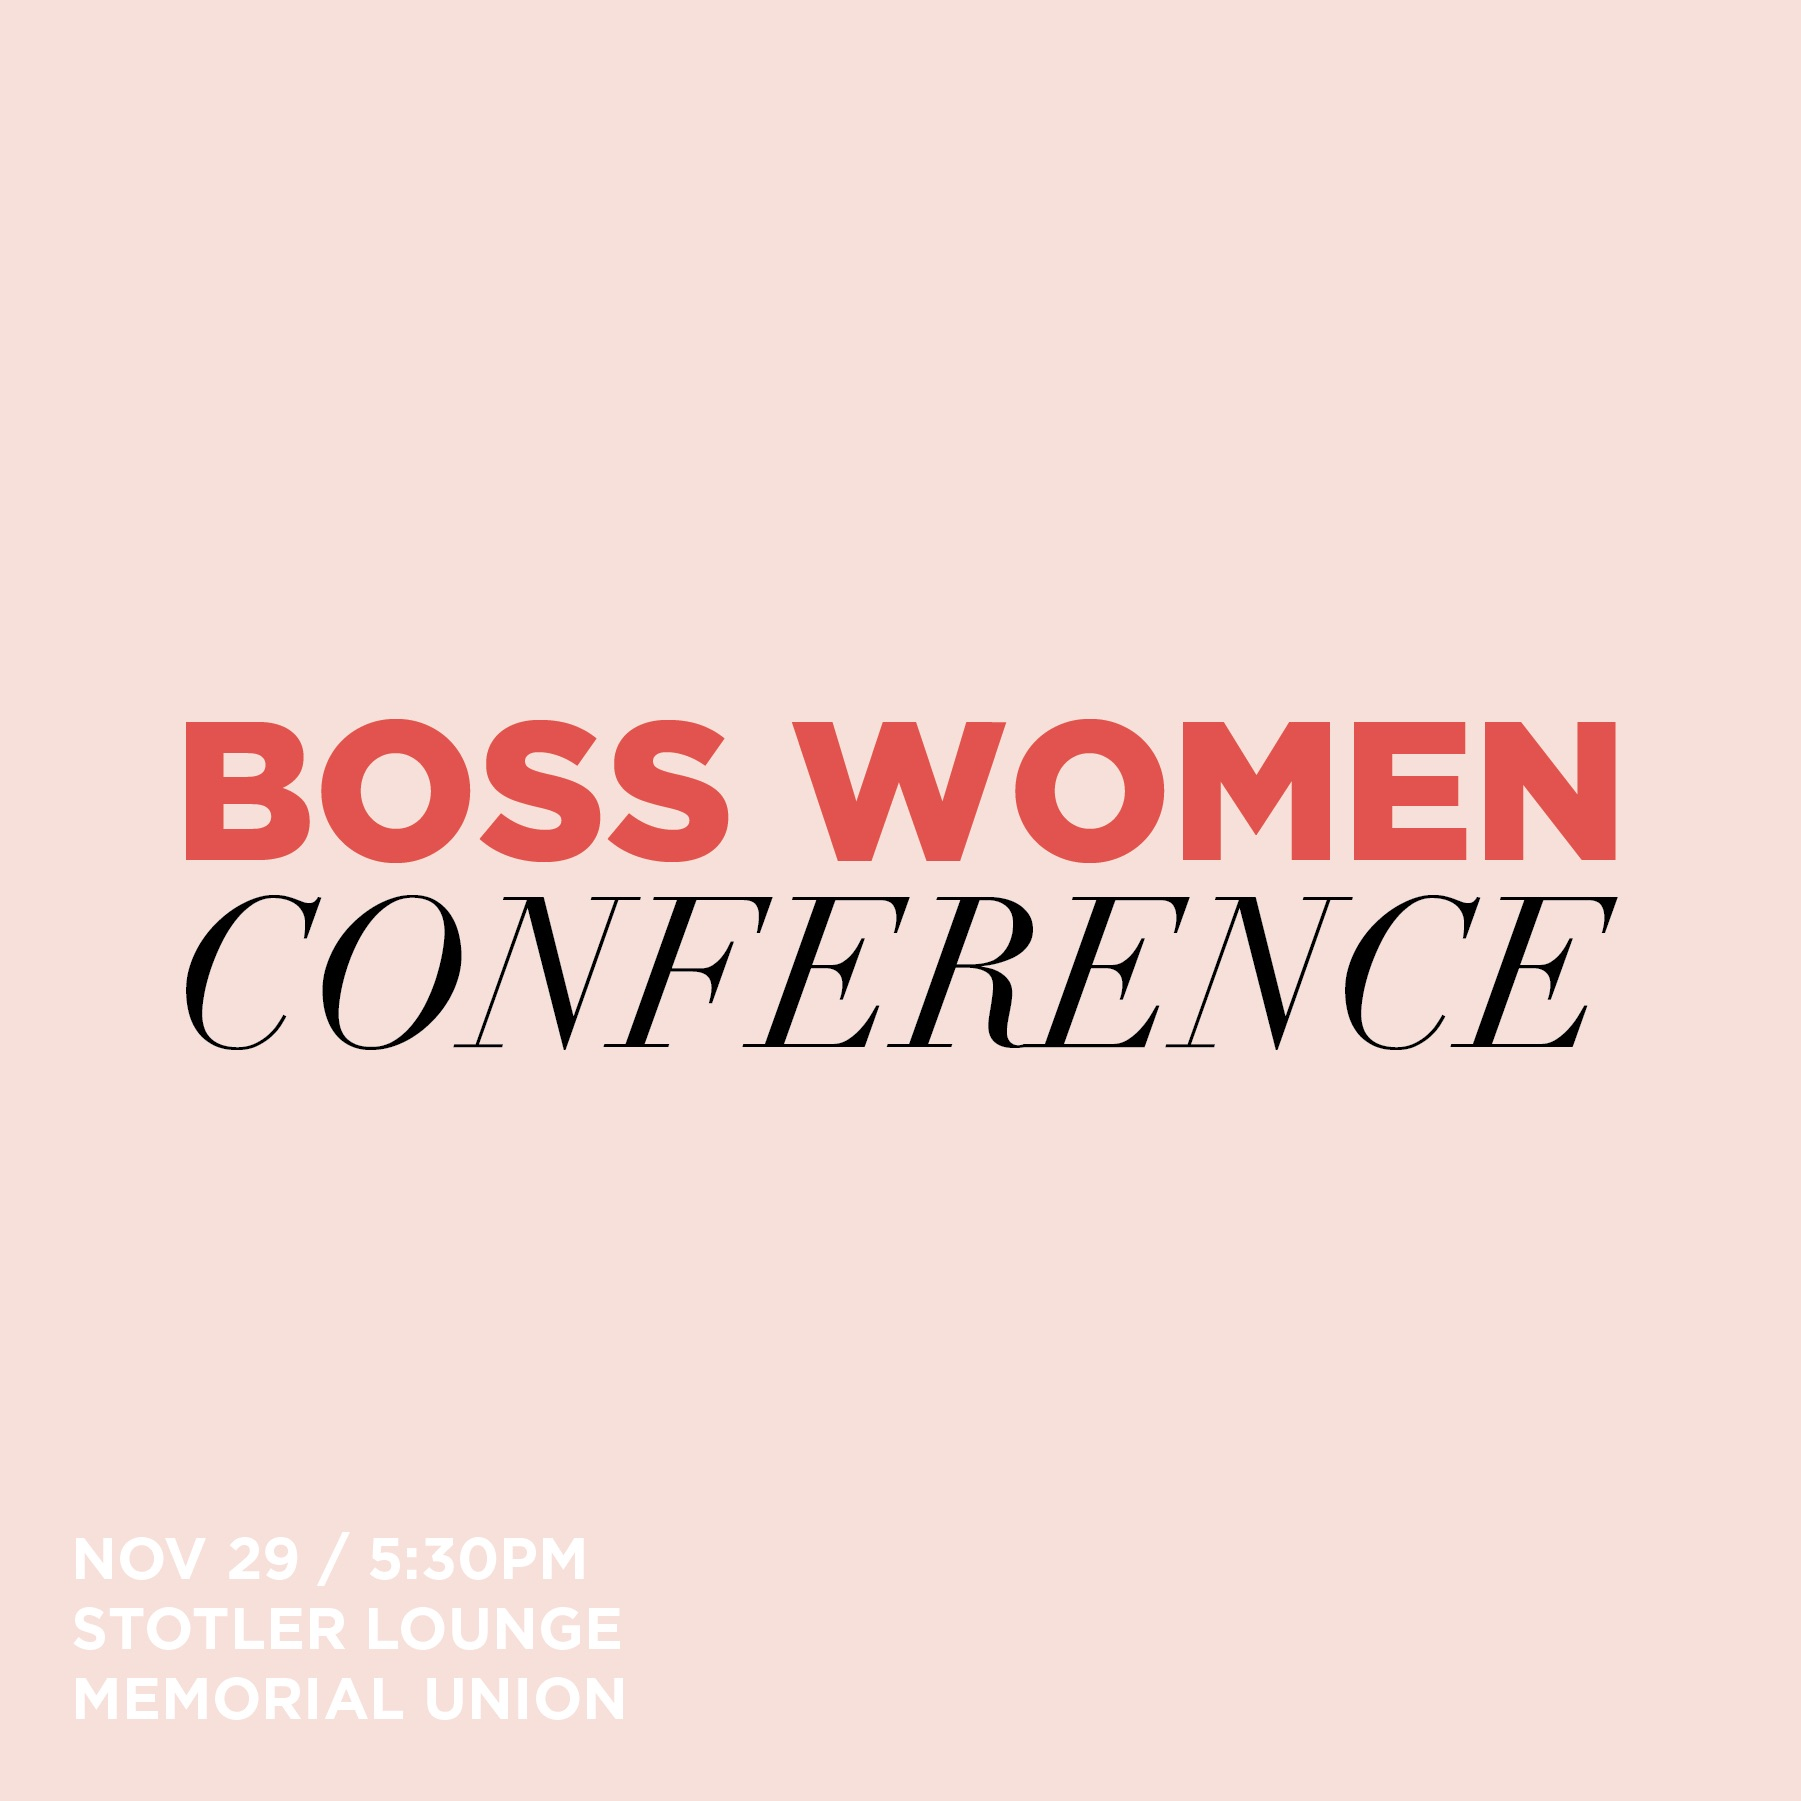 boss-women-conference-06 copy.jpg